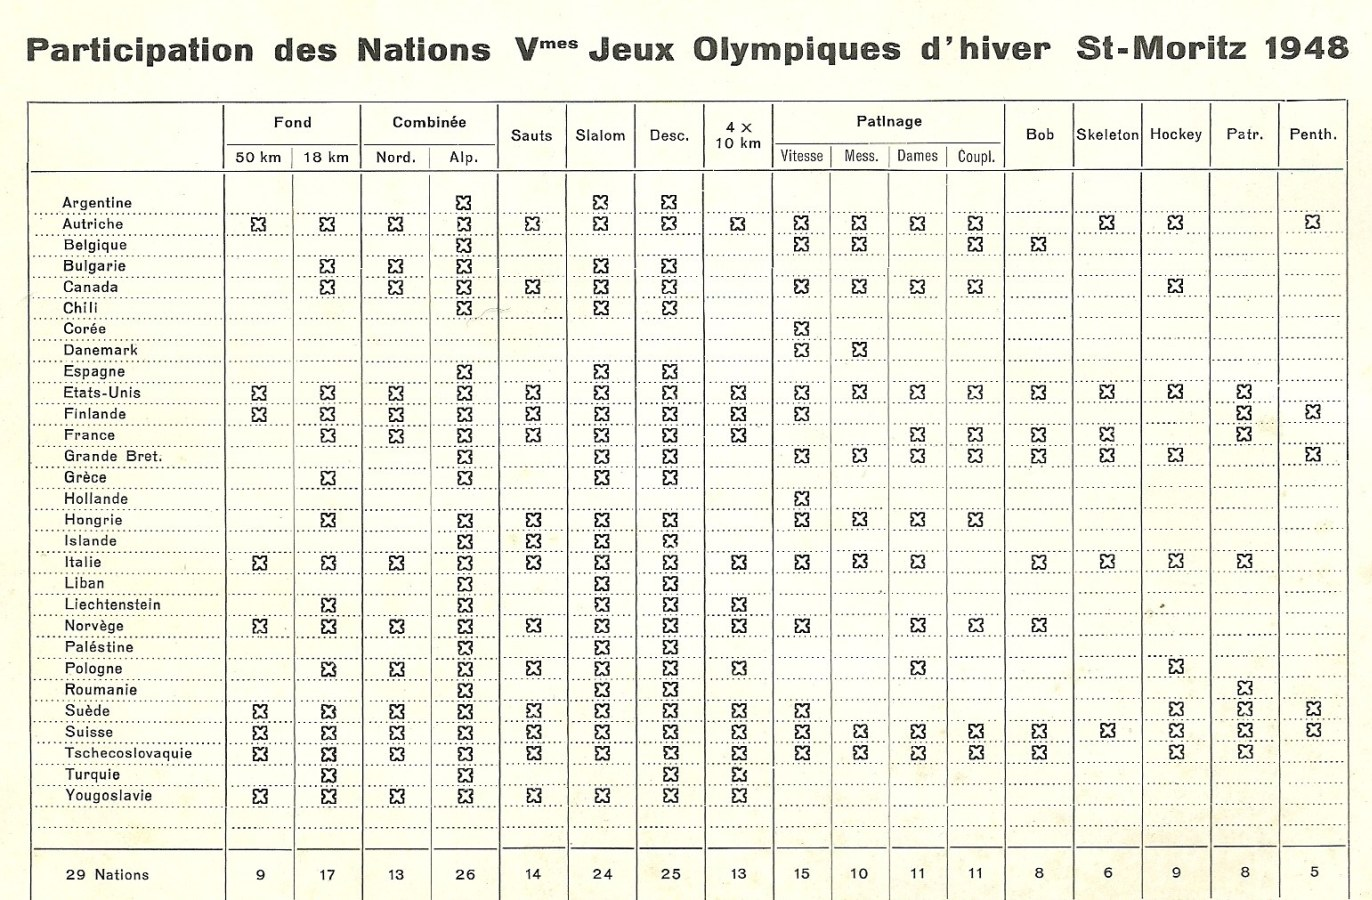 Photo: Official Program List of Sports Entered by Participating Nations for 1948 Winter Olympics